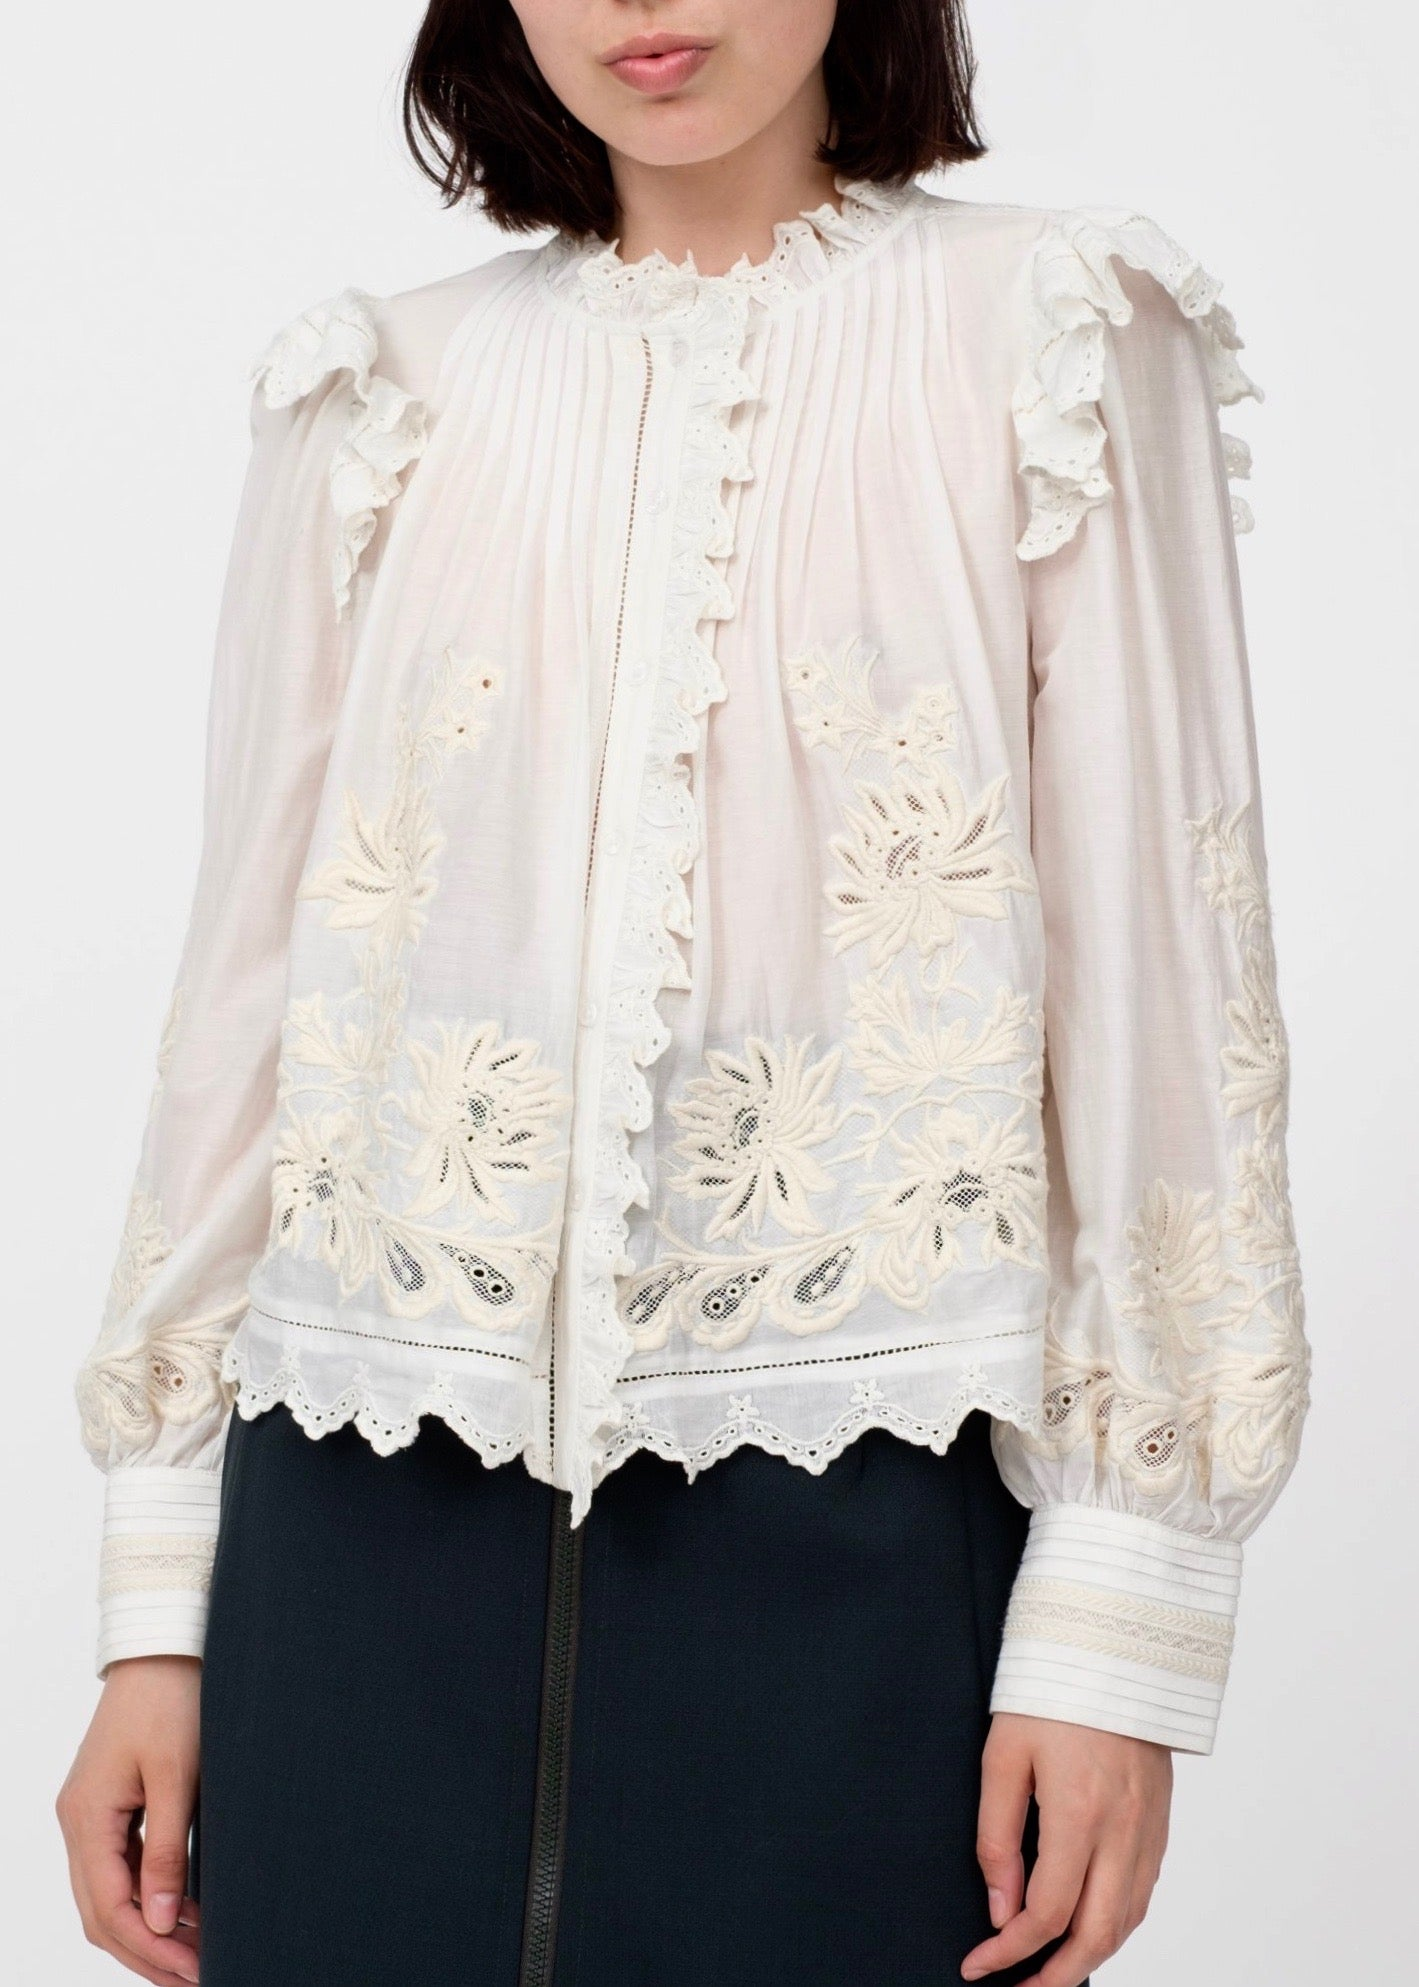 Sea Greta long sleeve ruffle blouse in cream